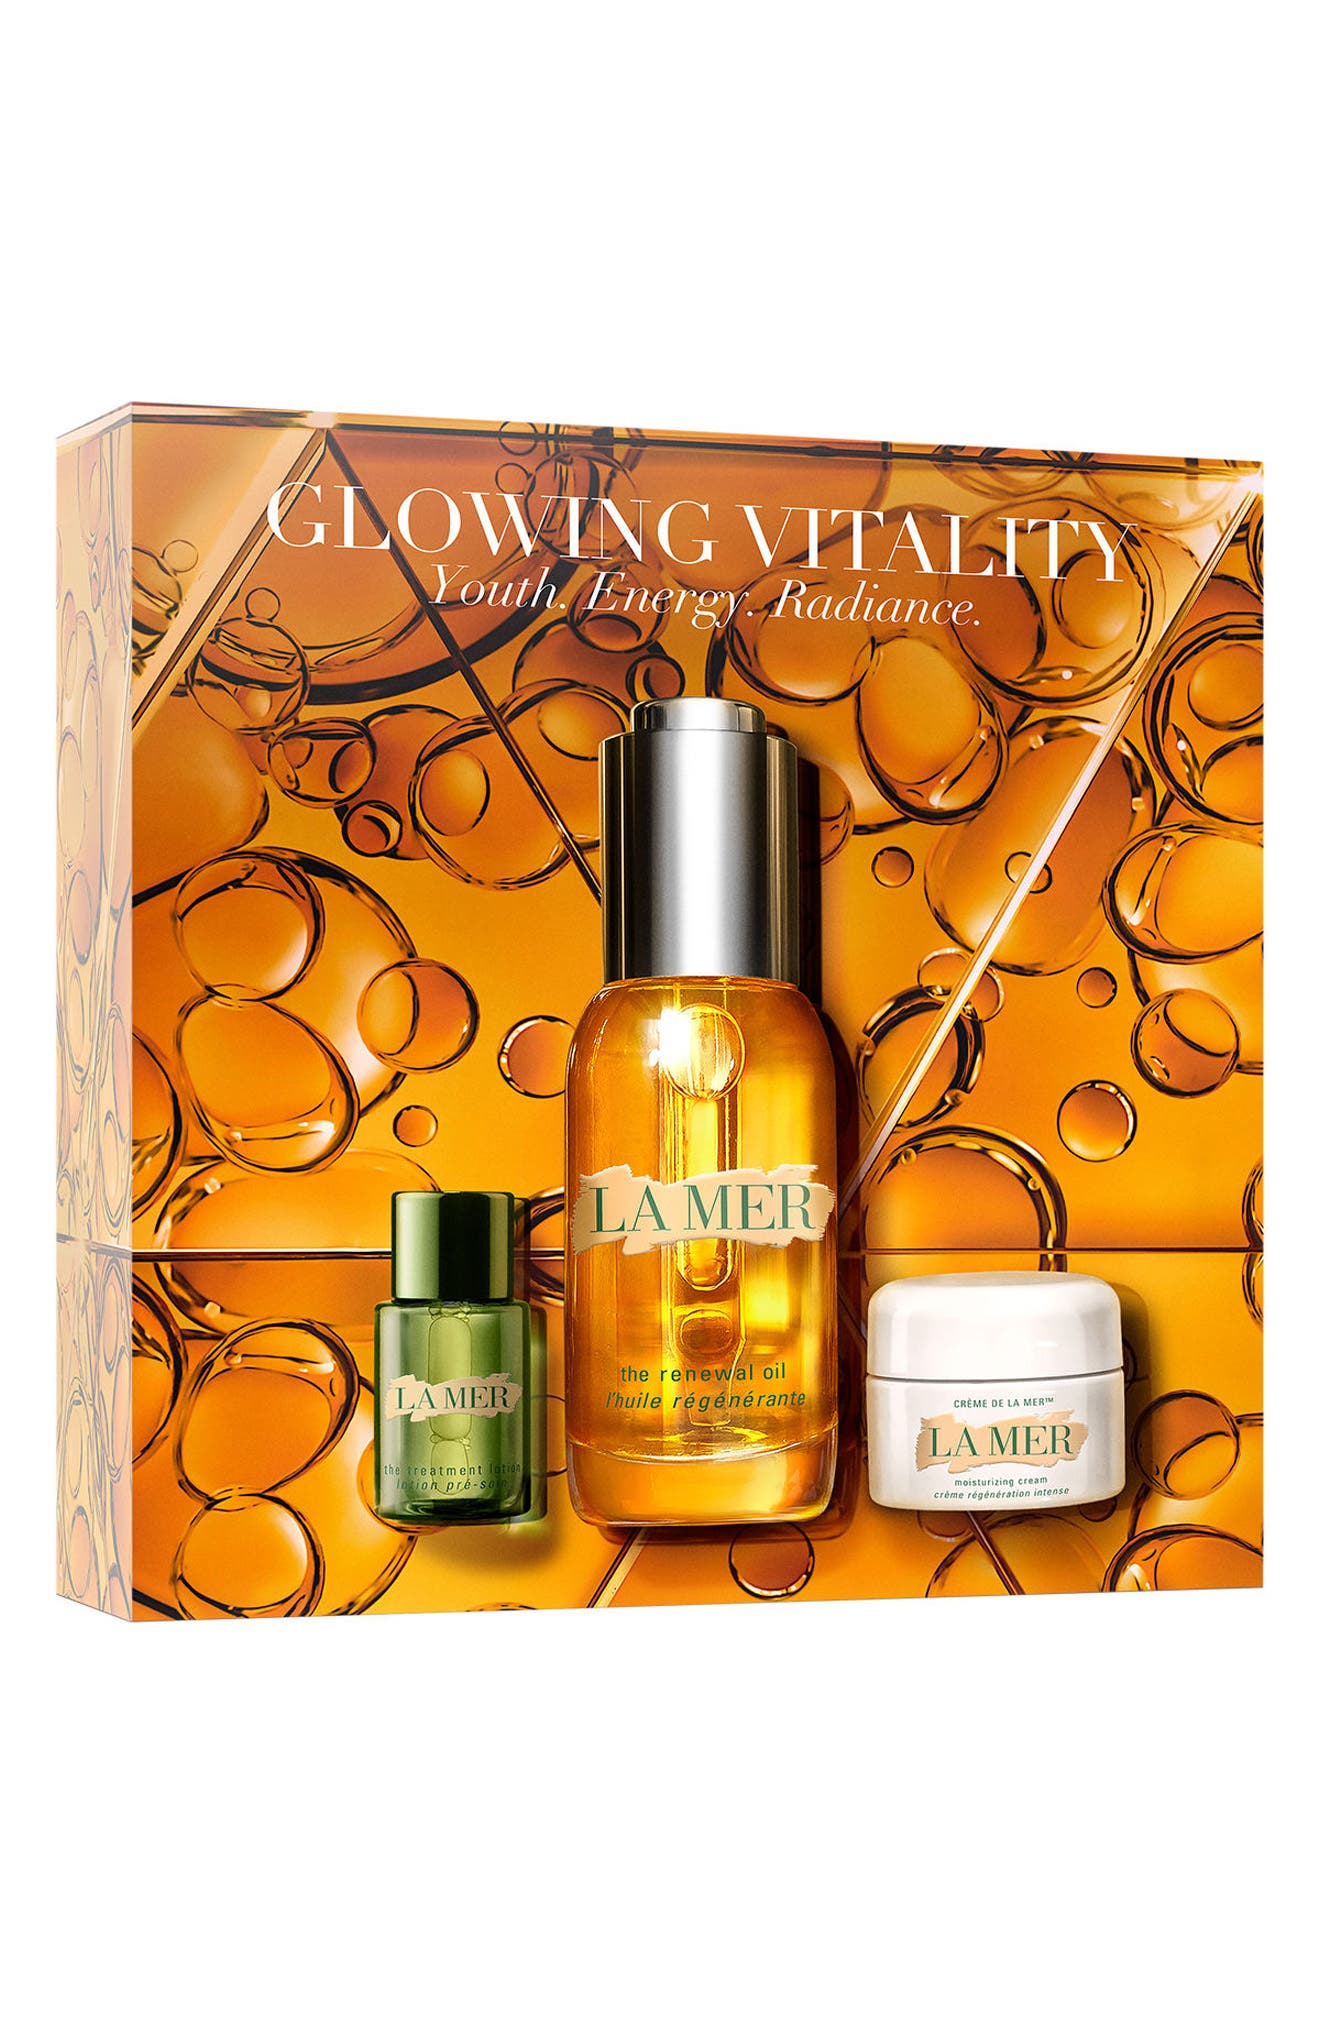 La Mer Glowing Vitality Collection ($296 Value)